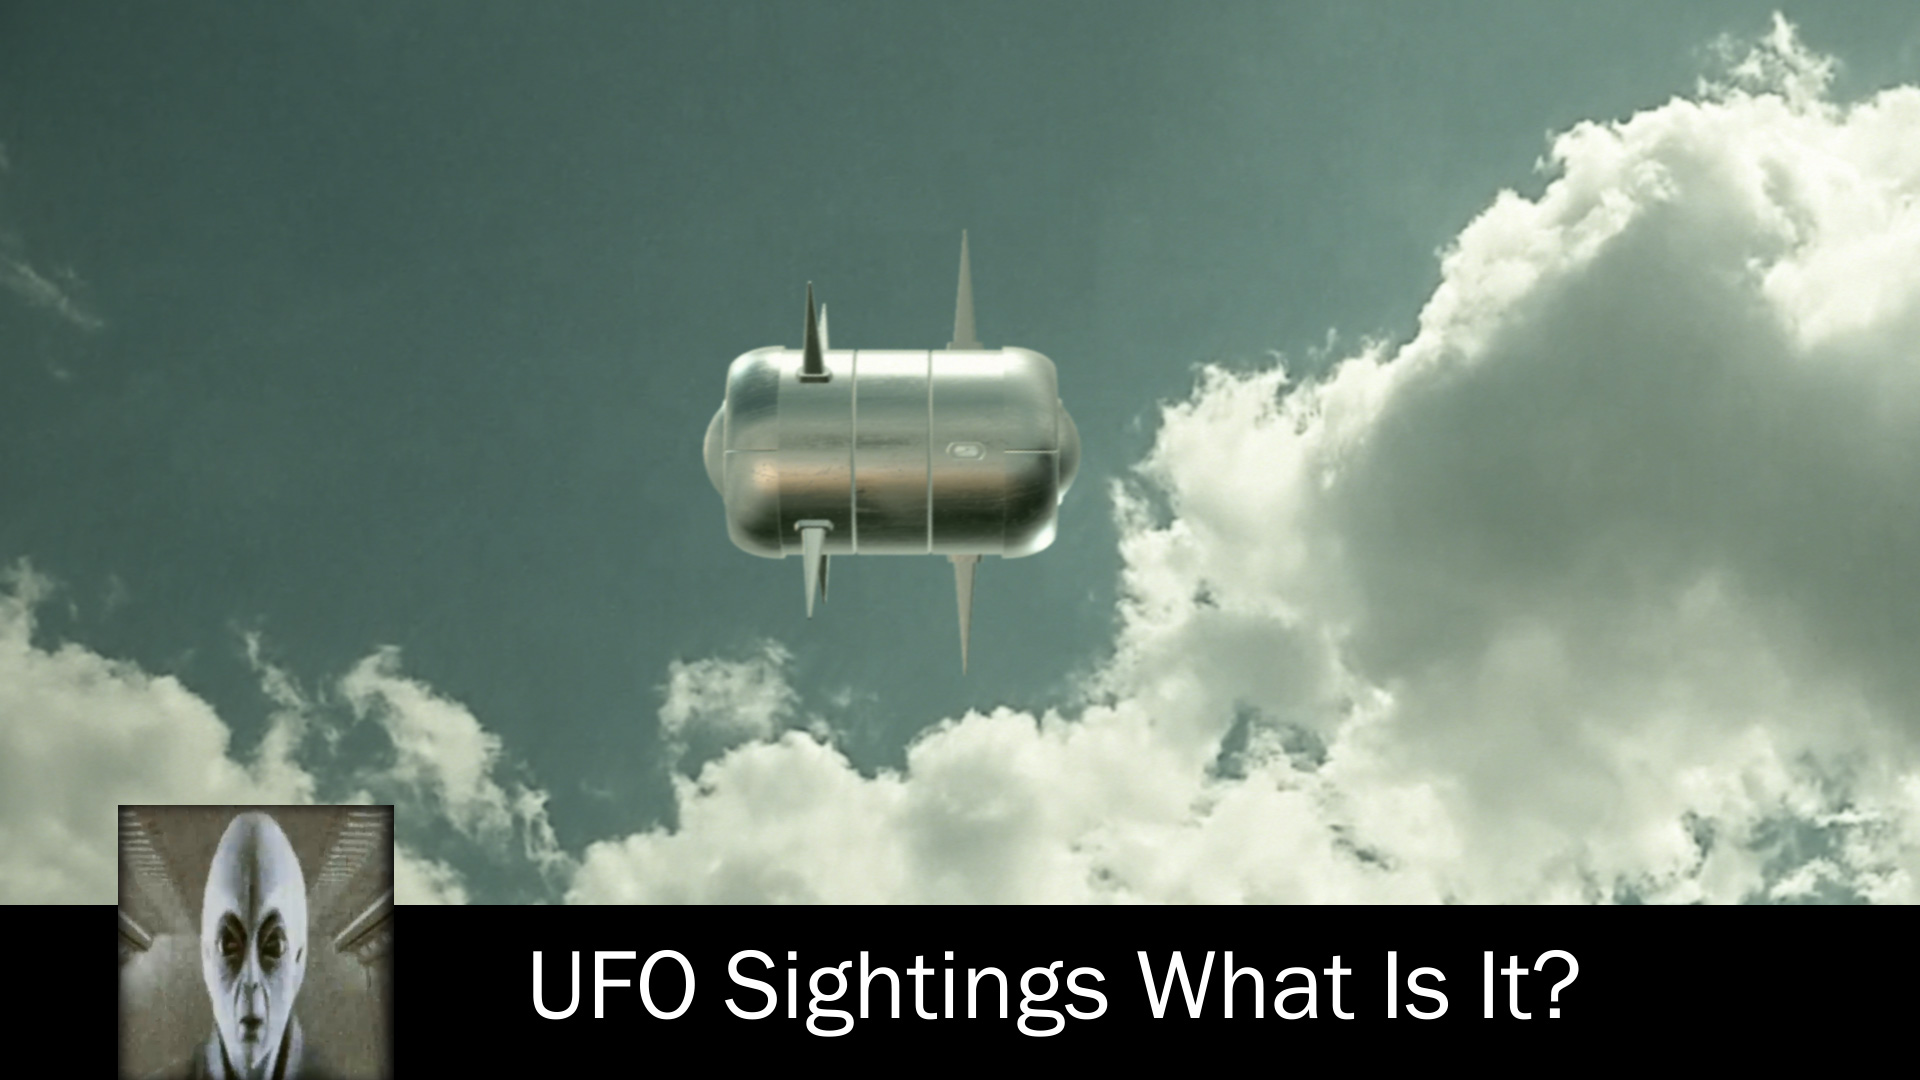 UFO Sightings What Is It June 9th 2017